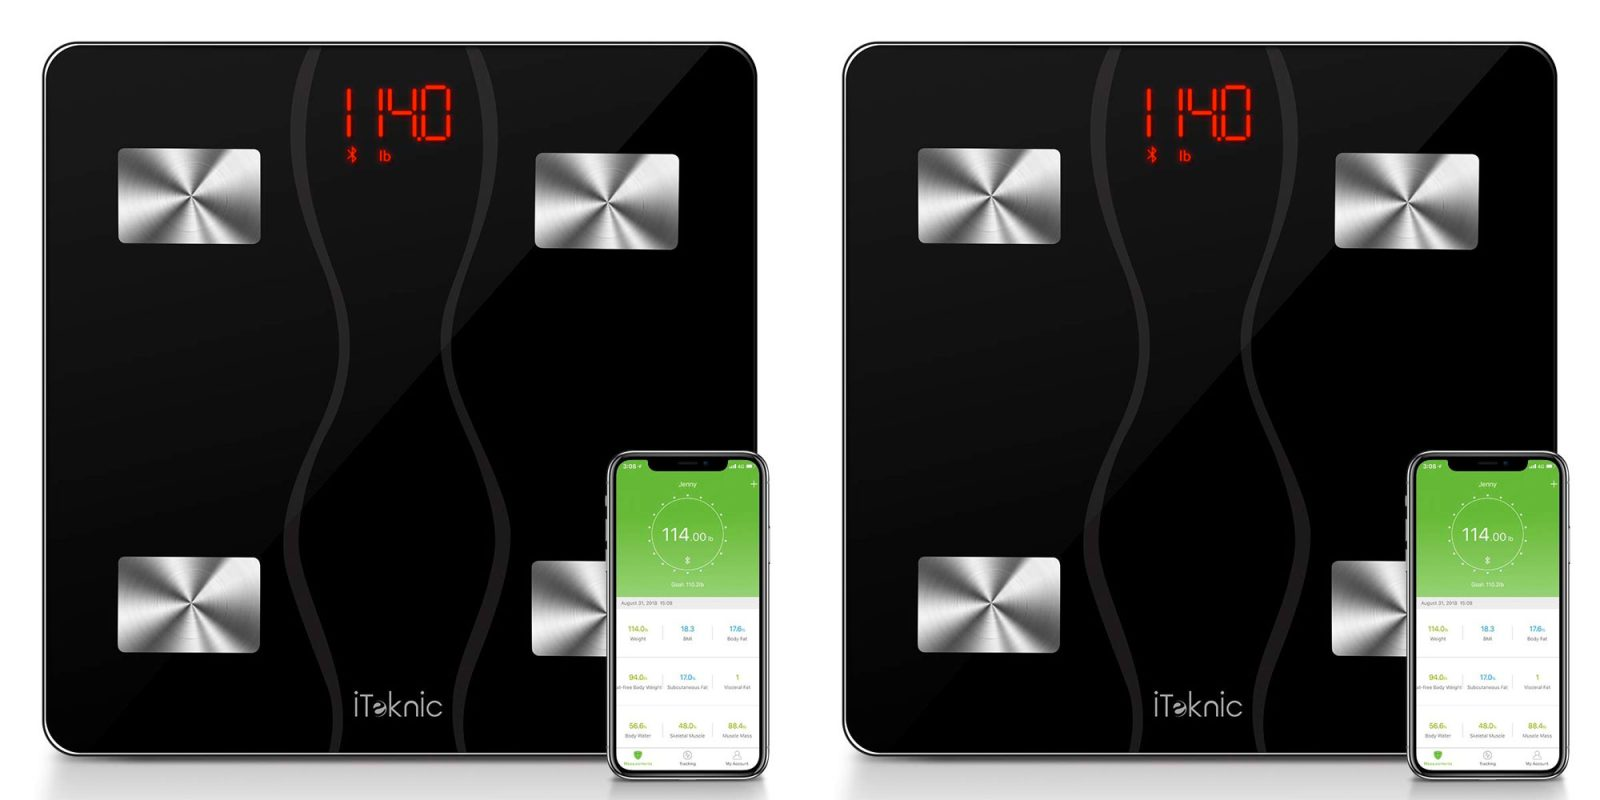 Summer's just around the corner, log your weight loss w/ a $19.50 smart scale